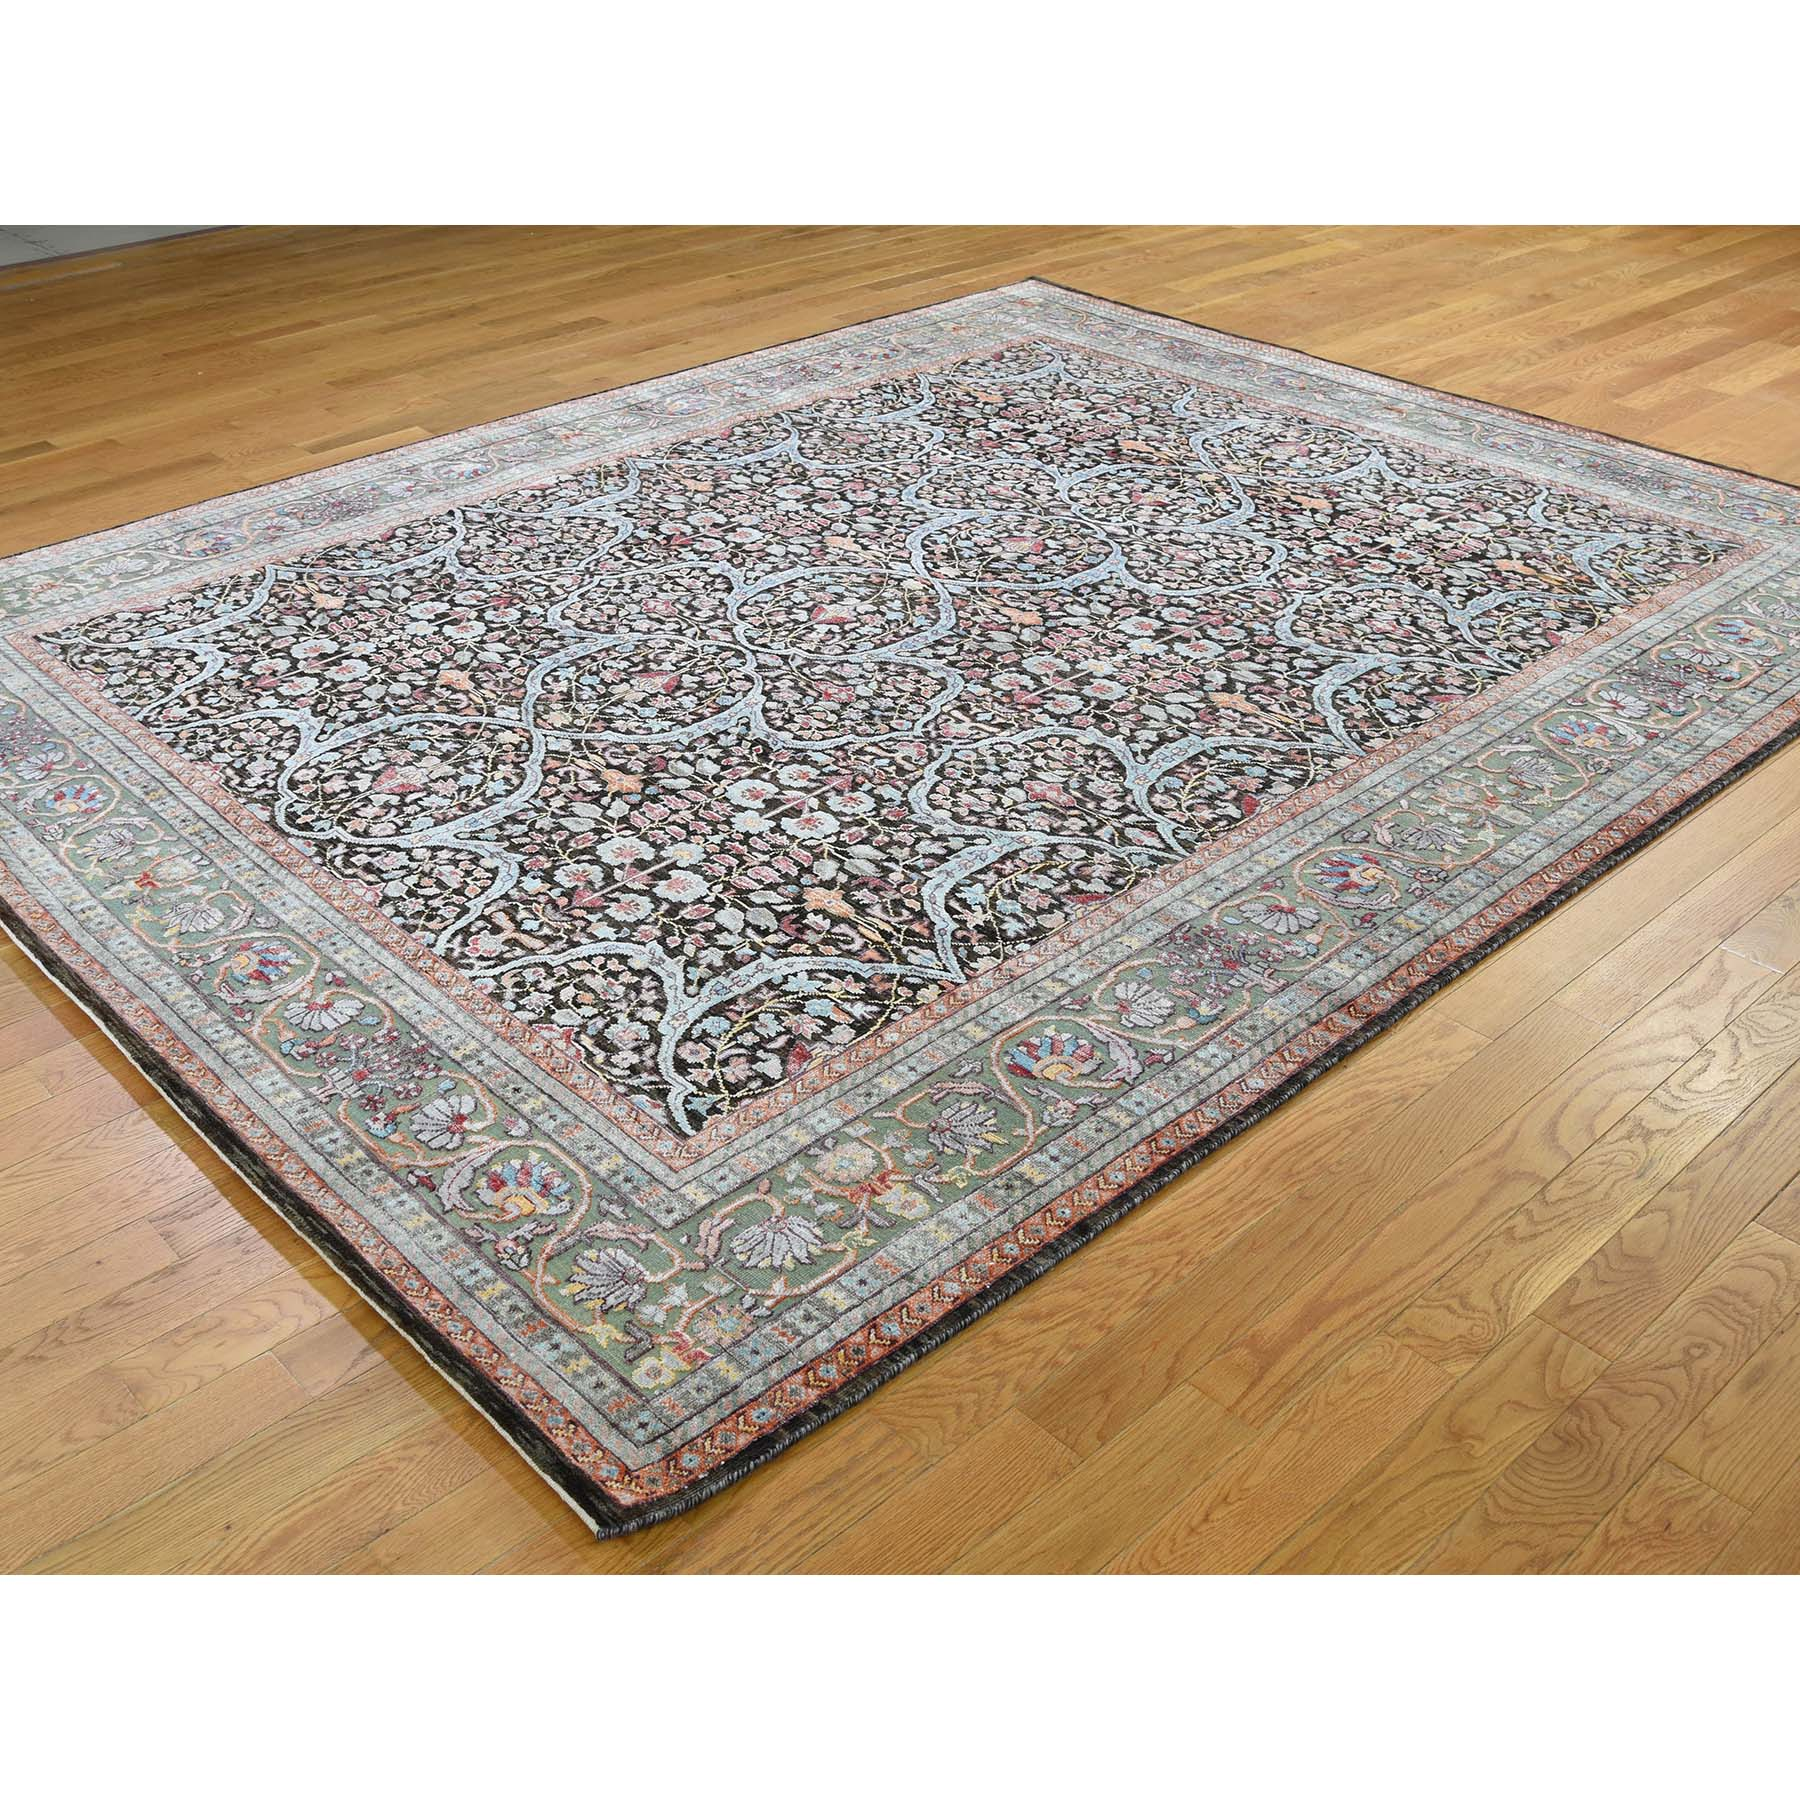 "8'1""x10' Silk With Textured Wool Kashan Design Hand-Knotted Oriental Rug"